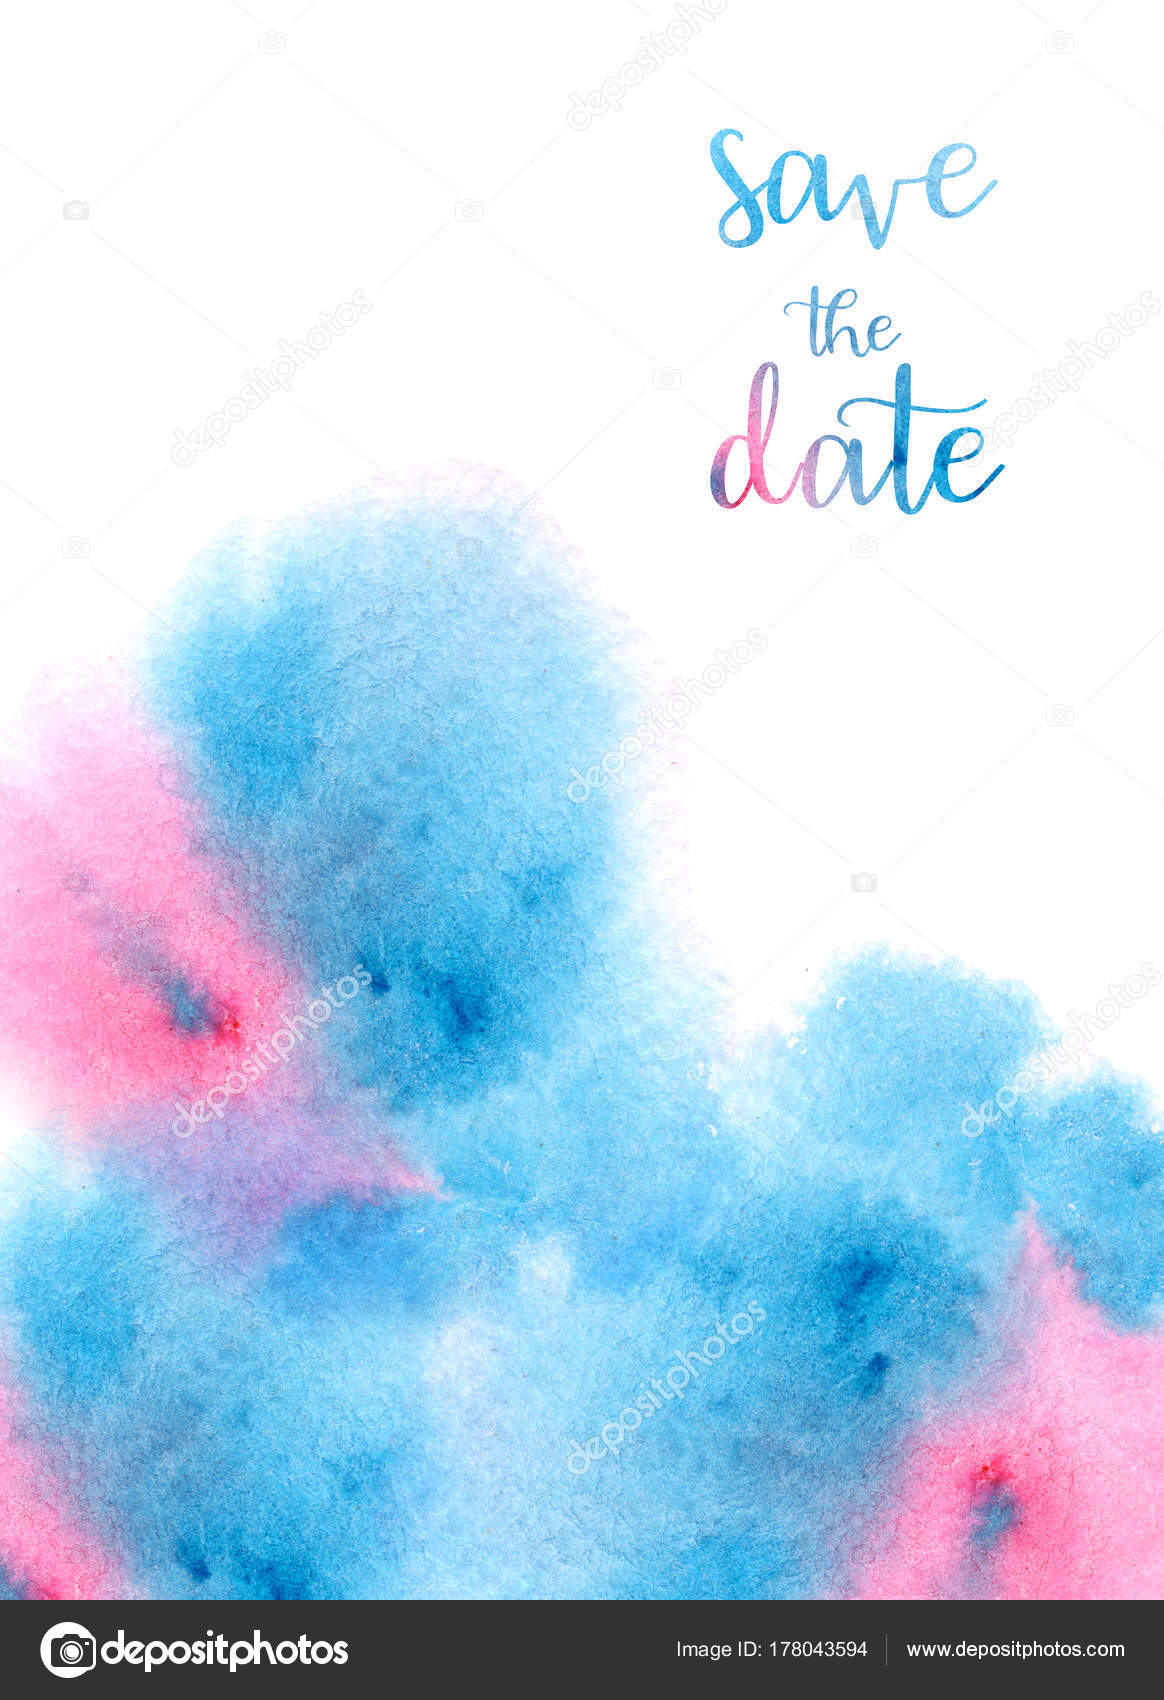 Watercolor Handmade Colorful Abstract Background Illustration Pink Blue Colors Wedding Stock Photo C Veris Studio 178043594